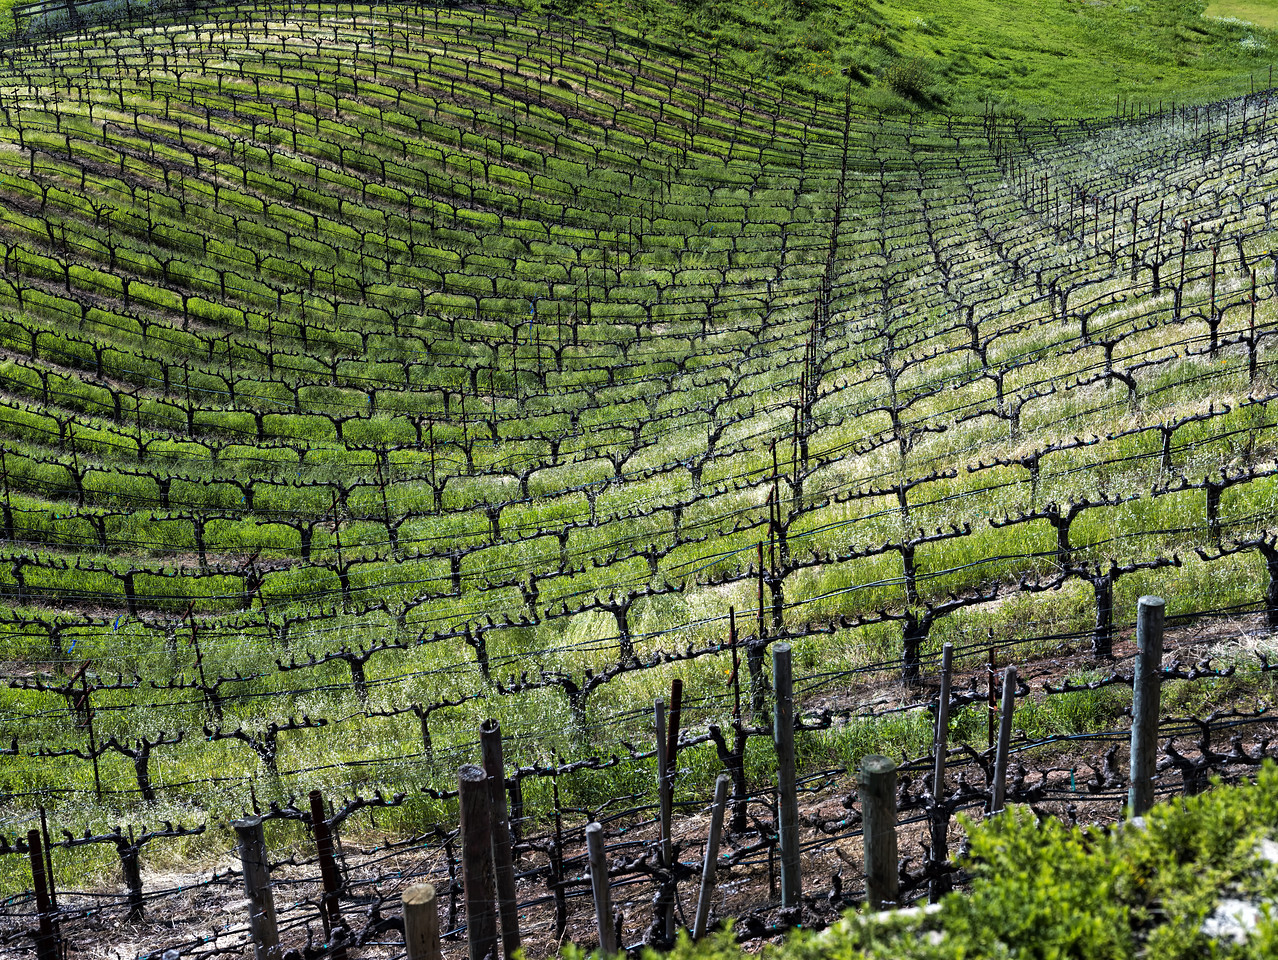 Rolling Vineyard, Napa Valley